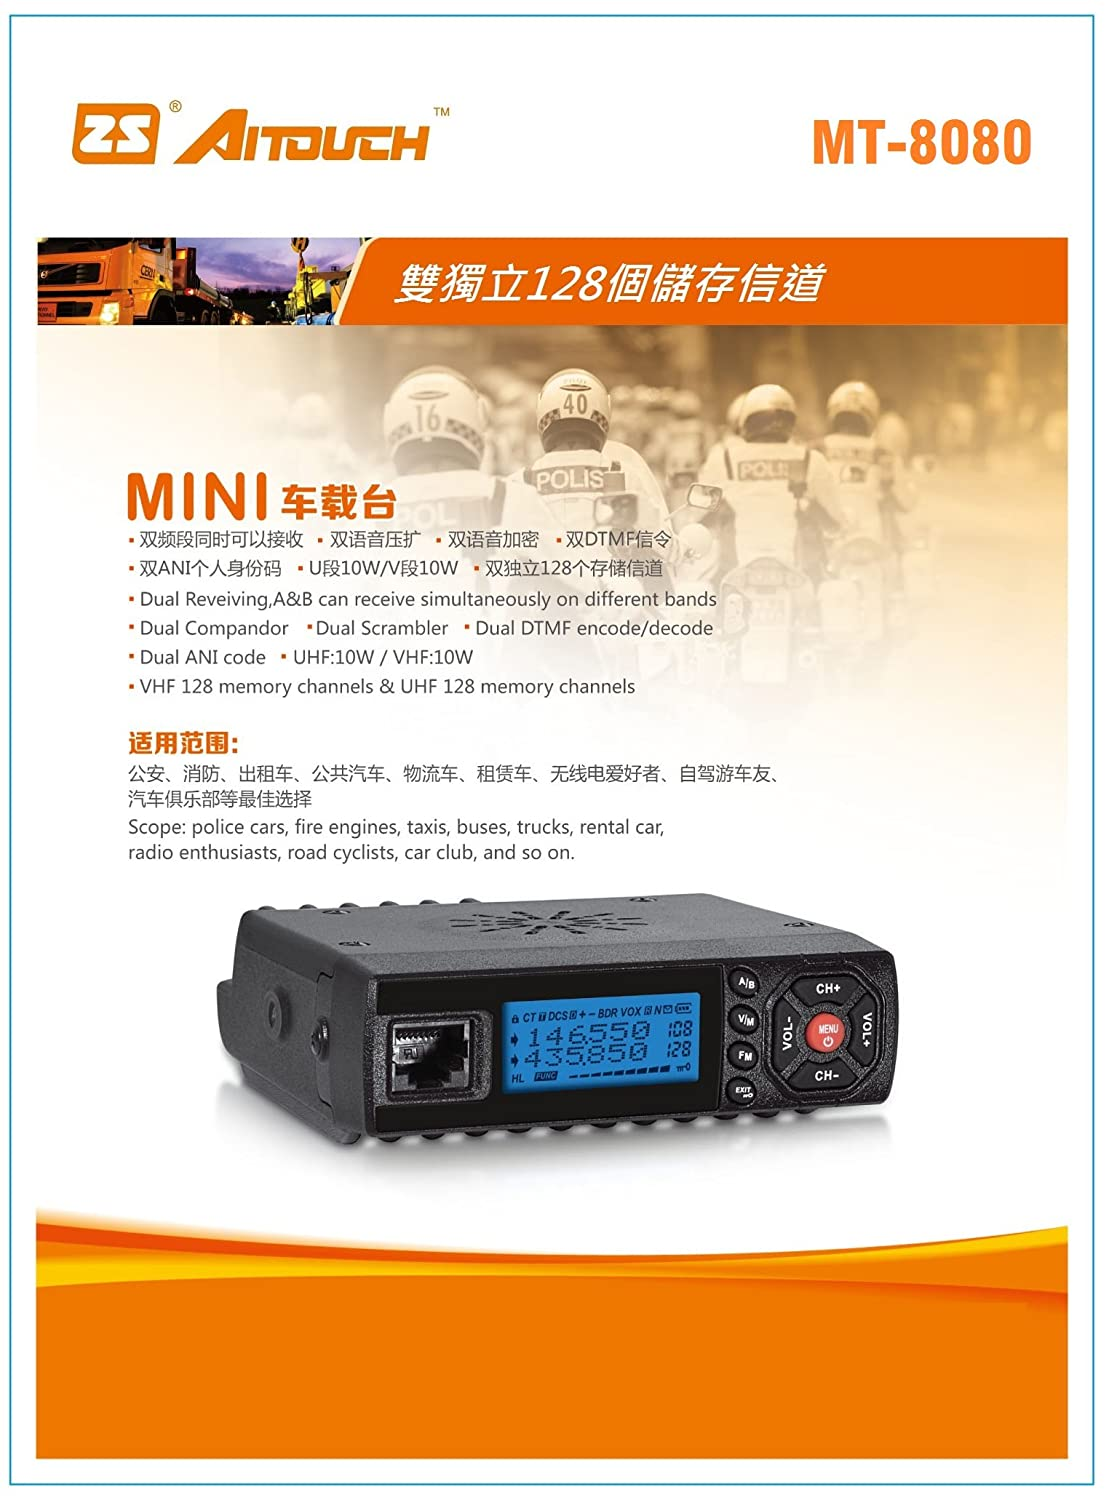 Aitouch Mt 8080 Mobile Radios Dual Dtmf Encode Decode Decoder Encoding Ani Code Car Electronics